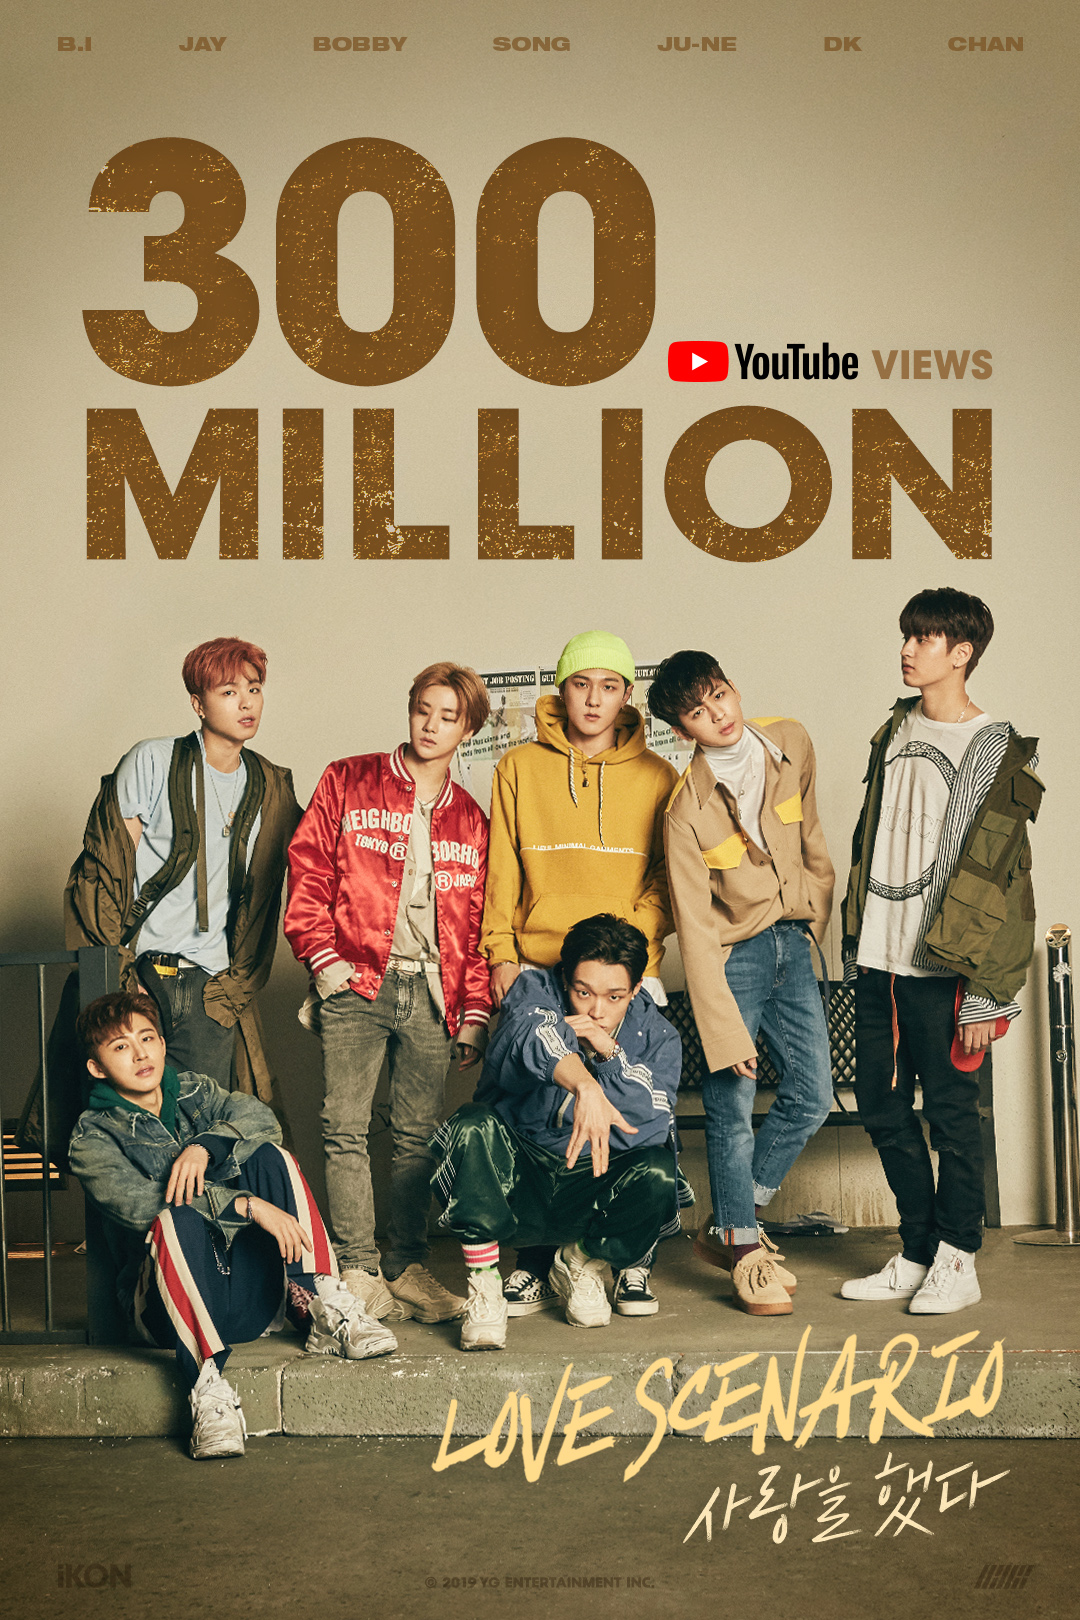 iKON_LoveScenario_300M